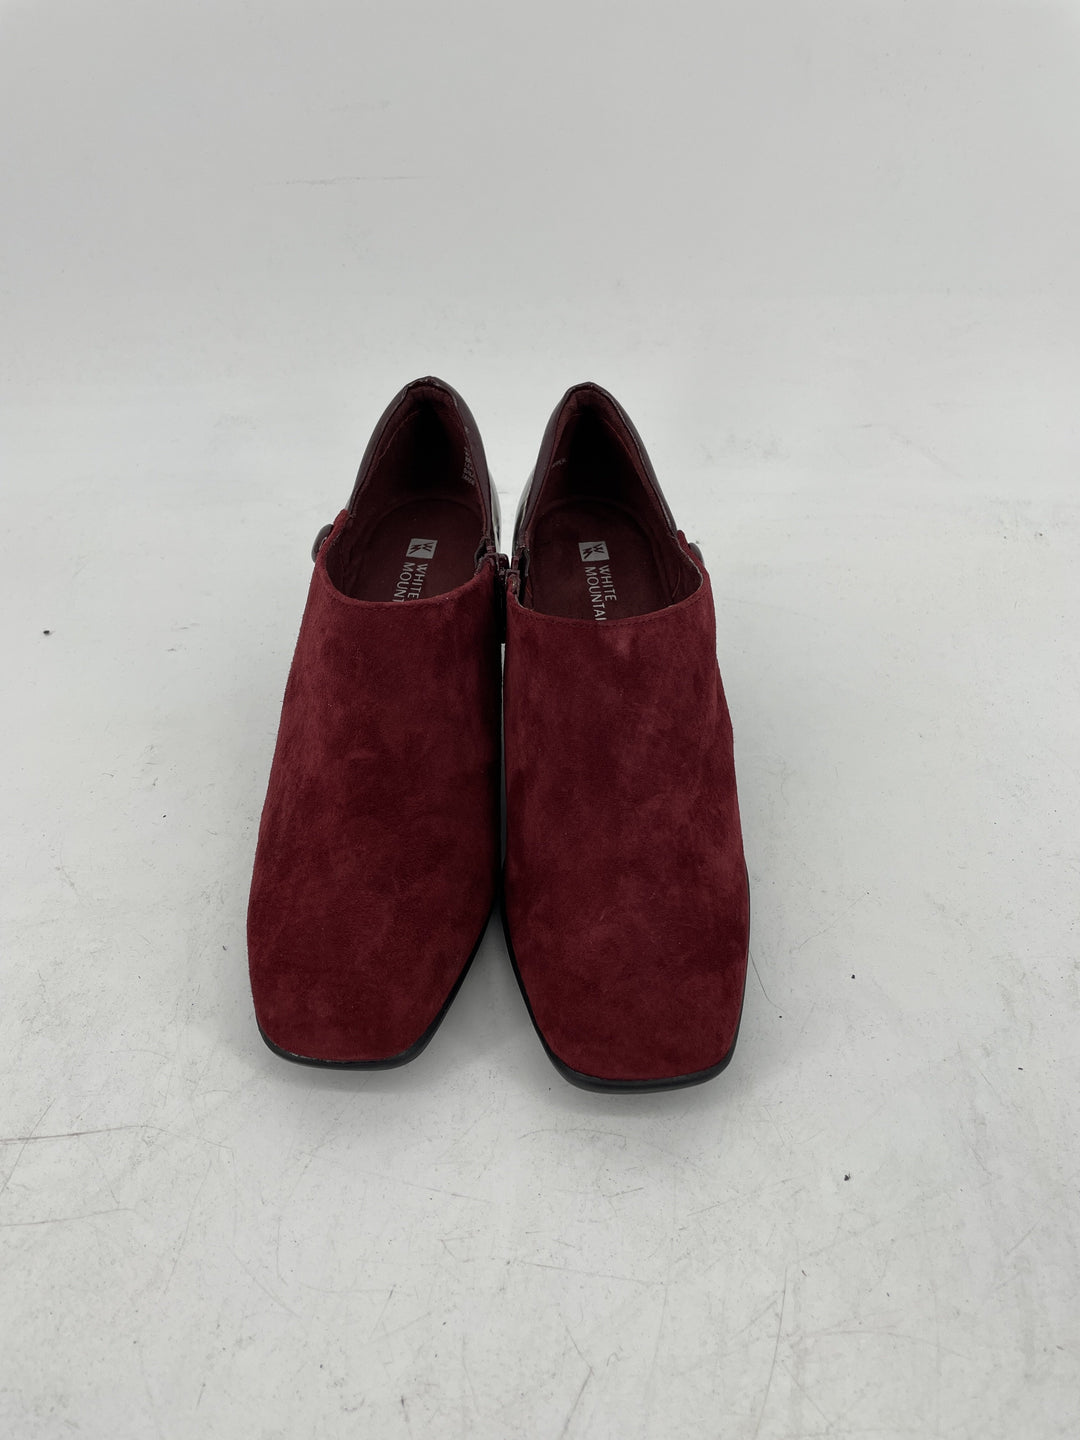 Primary Photo - brand: white mountain , style: shoes low heel , color: maroon , size: 8 , other info: new! , sku: 128-3212-49071